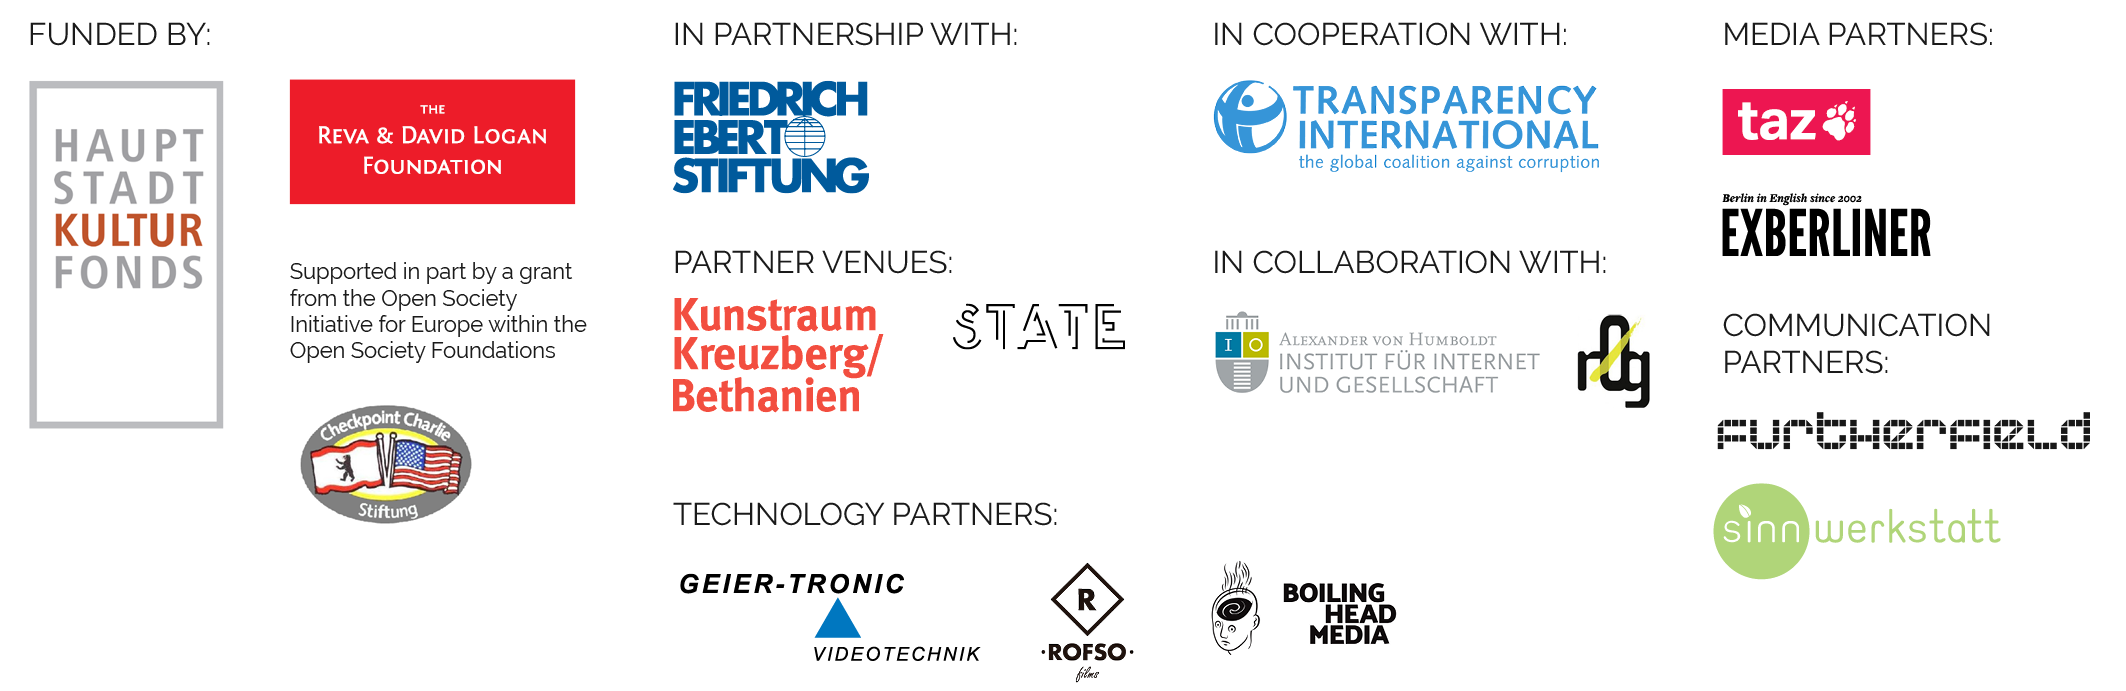 Partner Logos for Web - AI TRAPS 190512.png